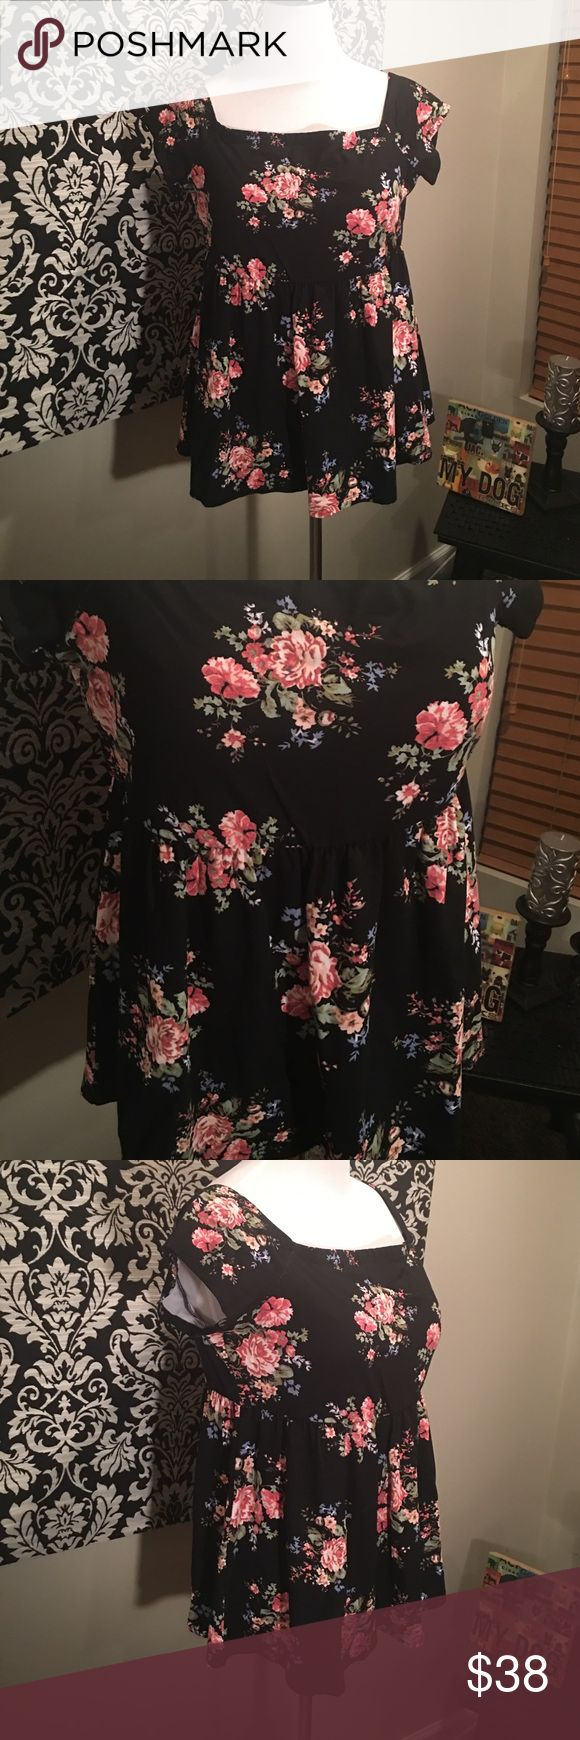 """Torrid black floral off the shoulder babydoll top """"Give them the bold shoulder; this babydoll top makes it easy. The black knit off shoulder design is a little bit retro, a whole lot of garden-friendly with a multi-color floral print. The babydoll cut is totally flattering, and keeps you in a swing state. Size 1 measures 29 1/2"""" from shoulder: Rayon/polyester/spandex."""" New with tags, size 1X. torrid Tops"""